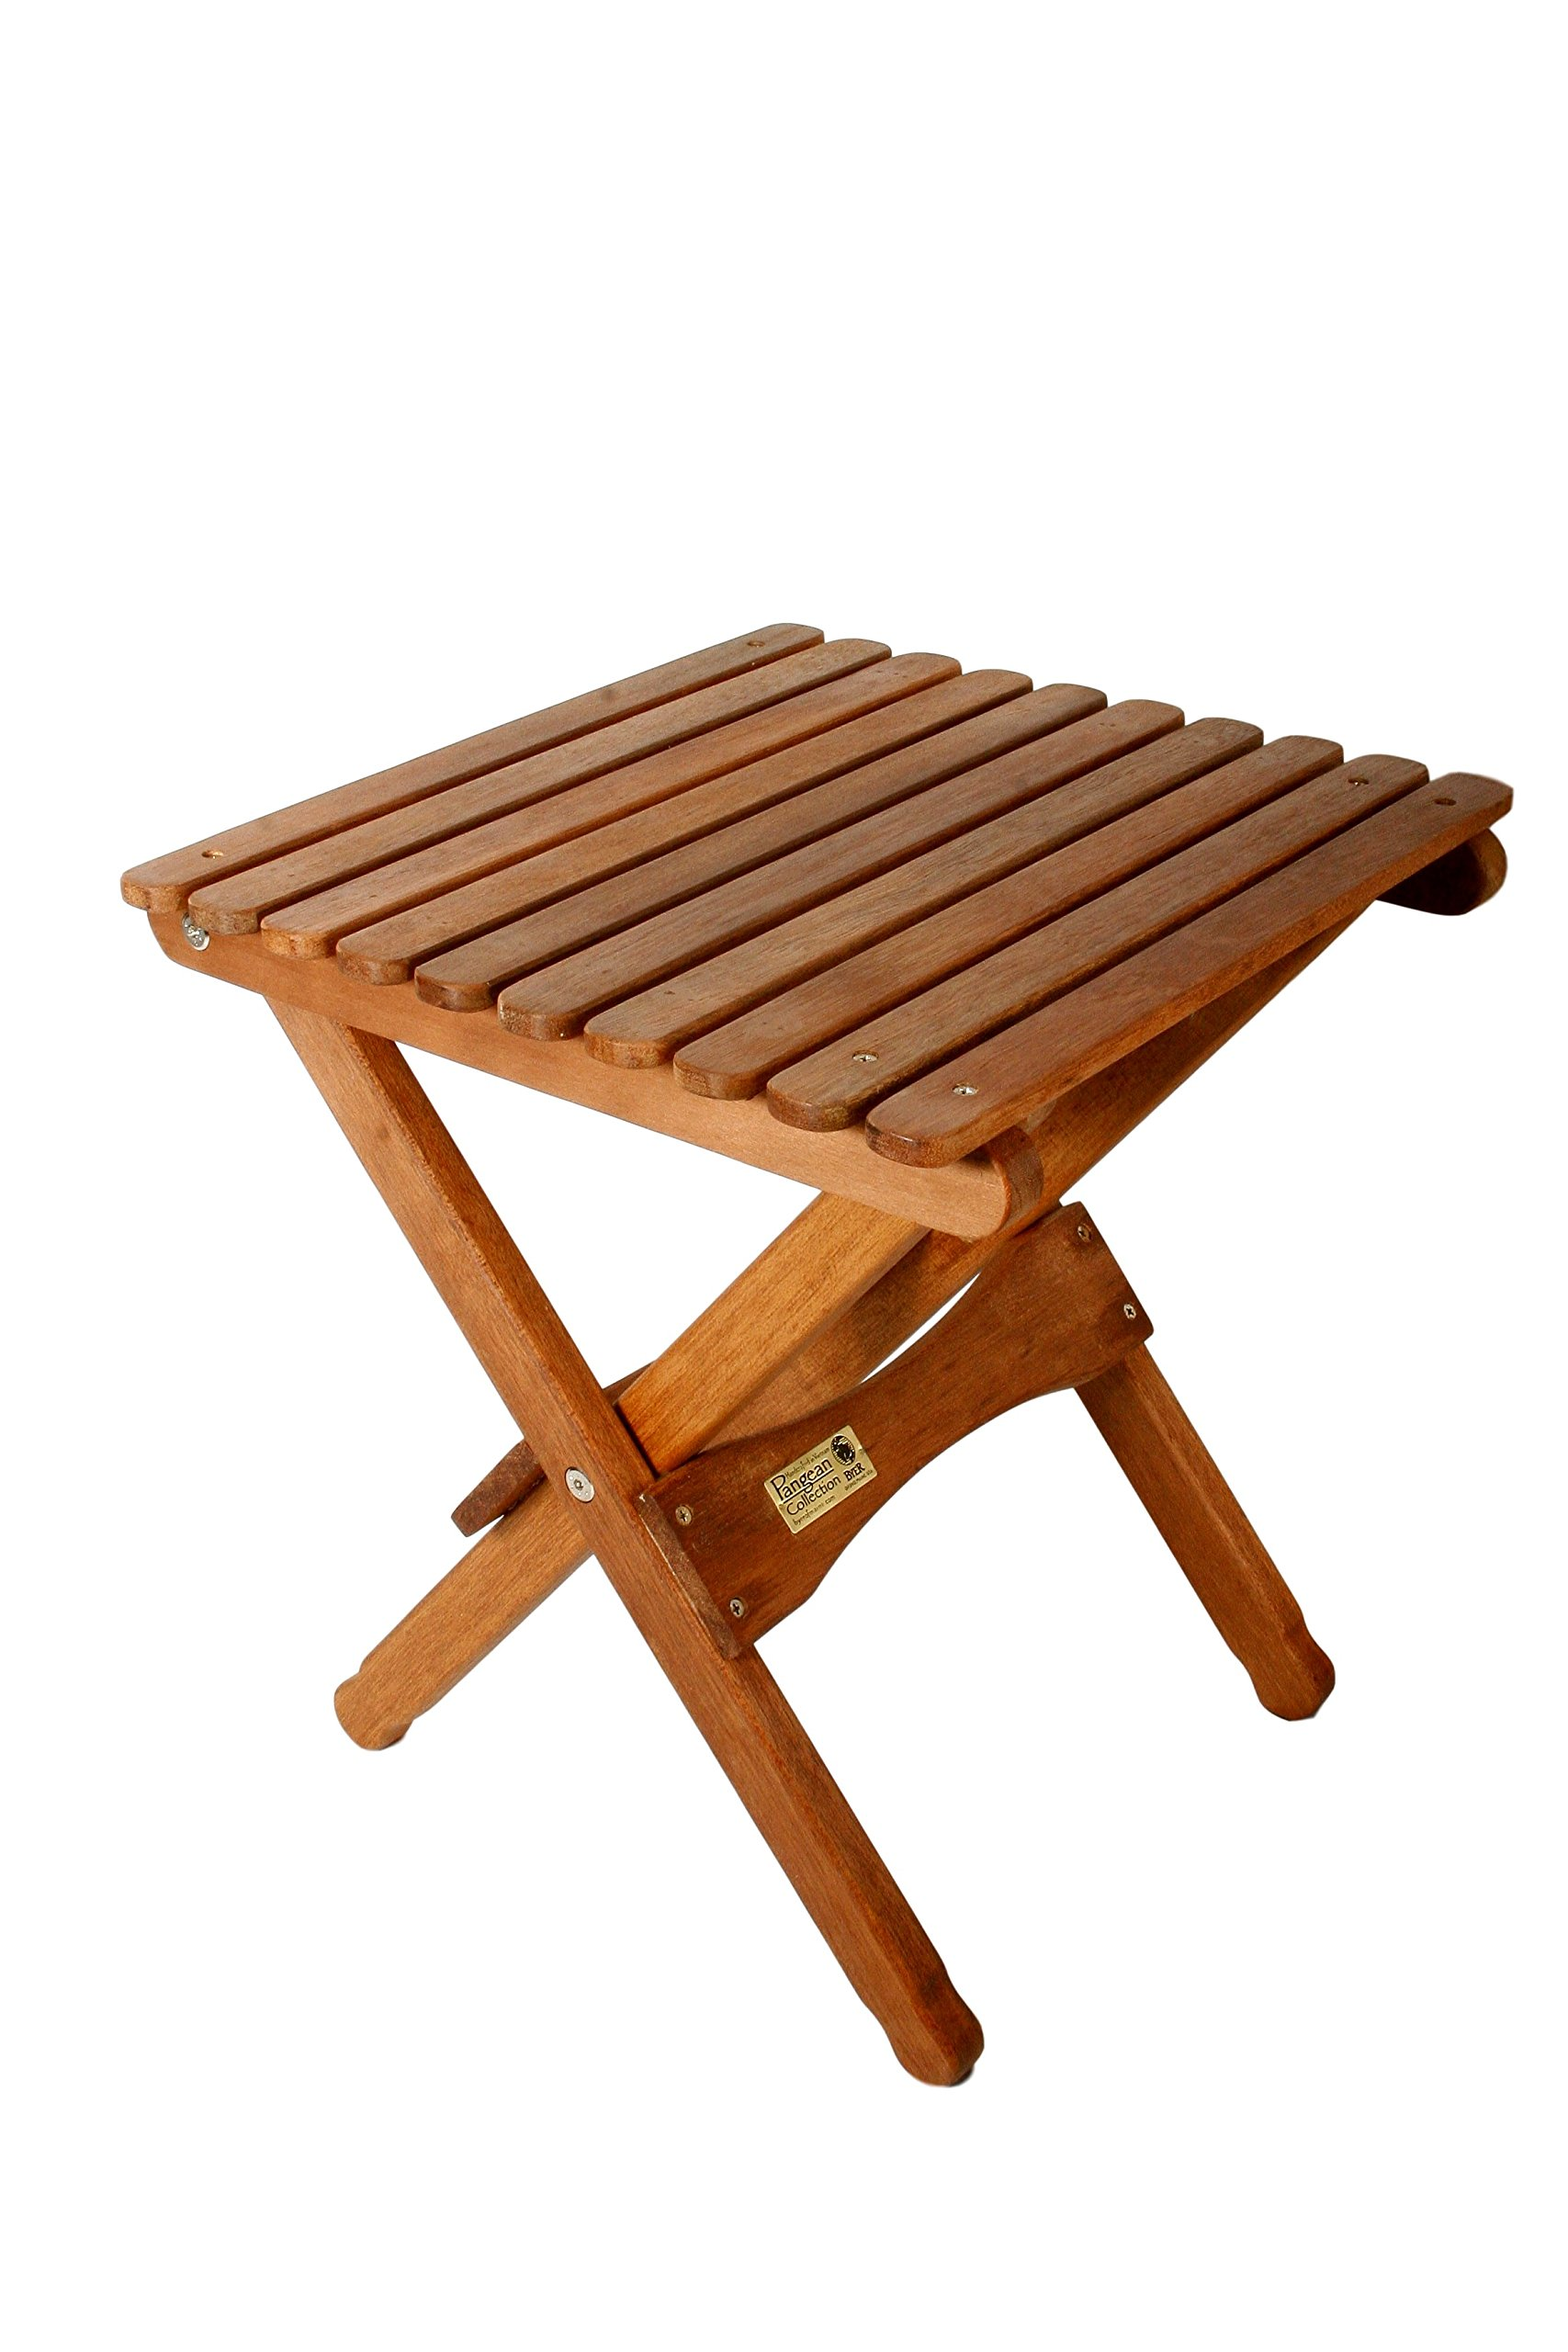 BYER OF MAINE, Pangean, Folding Wood Table, Hardwood, Folding Patio Table, Porch Table, Easy to Fold and Carry, Perfect for Camping, Wooden Camp Table, Matches Pangean Furniture Line, Single by BYER OF MAINE